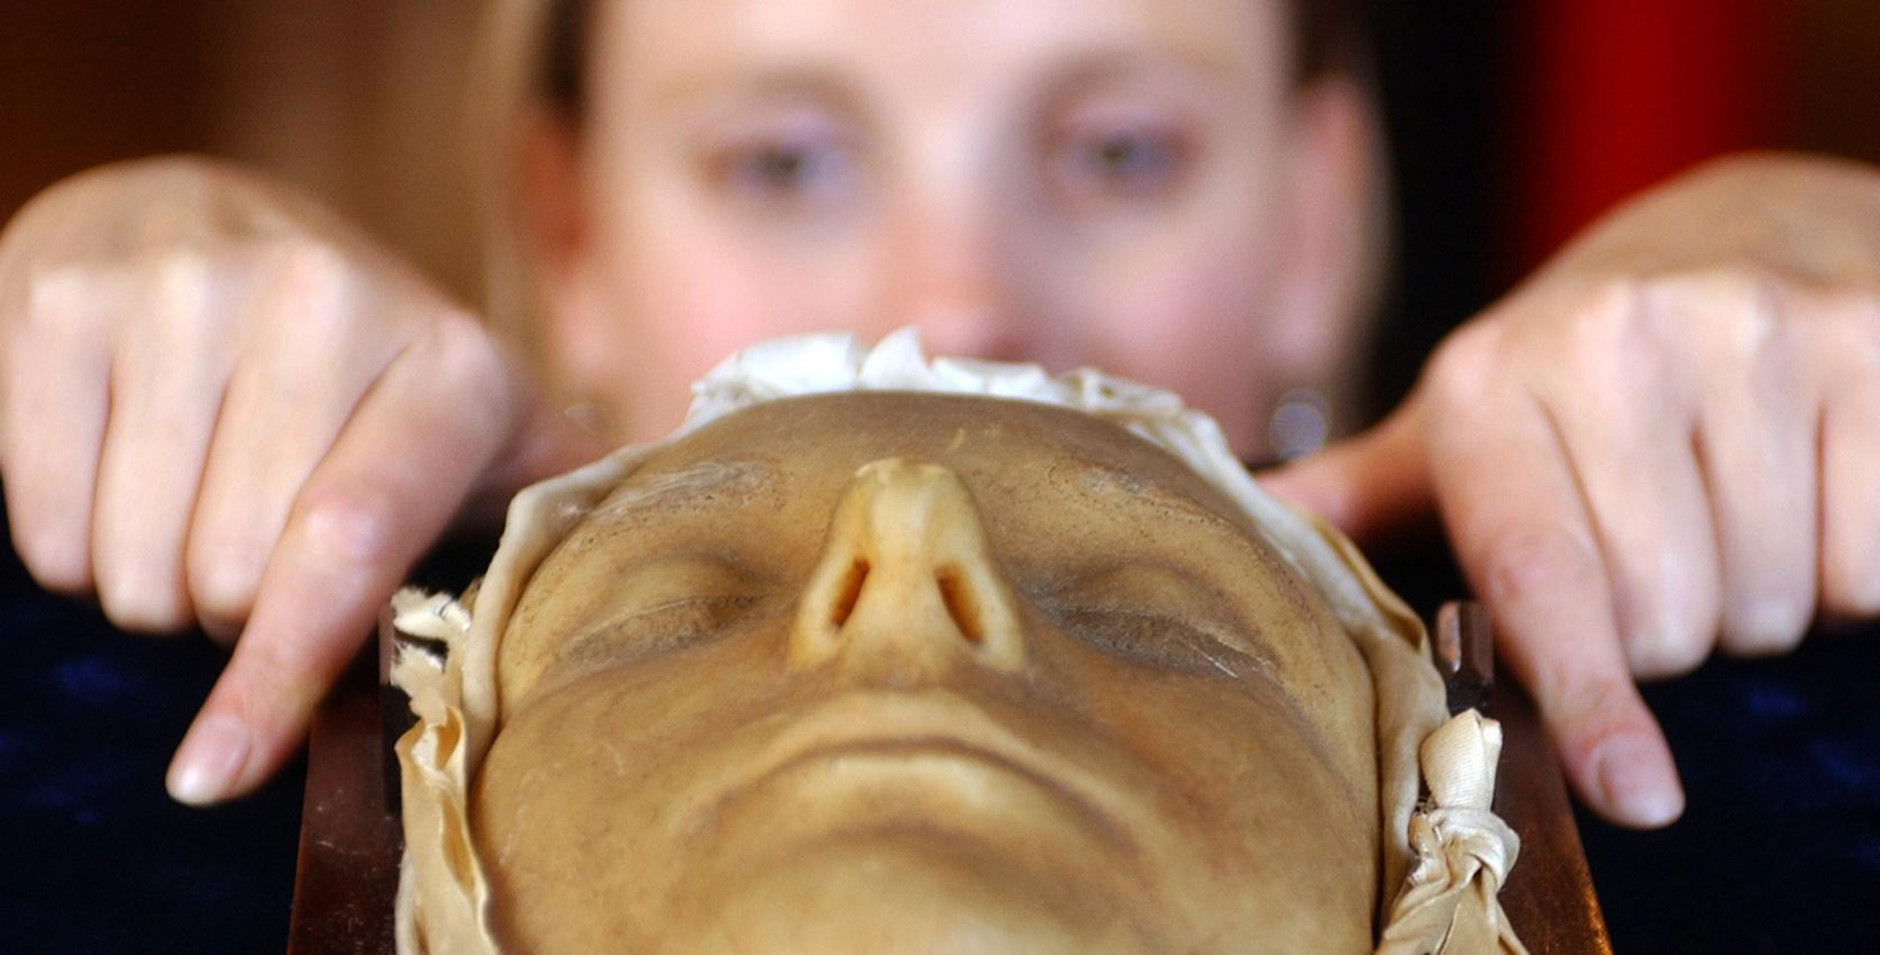 Victoria Crake, employee of auctioneers  Lyon and Turnbull, looks at the Death Mask of Mary Queen of Scots, that is on show at the auctioneers in Edinburgh,  Tuesday Aug. 1,  2006. Members of the public will be able to view the mask at the free  Edinburgh Fringe Festival exhibition which begins on August 6. (AP Photo/ Danny Lawson / PA)  **  UNITED KINGDOM OUT NO SALES NO ARCHIVE  **